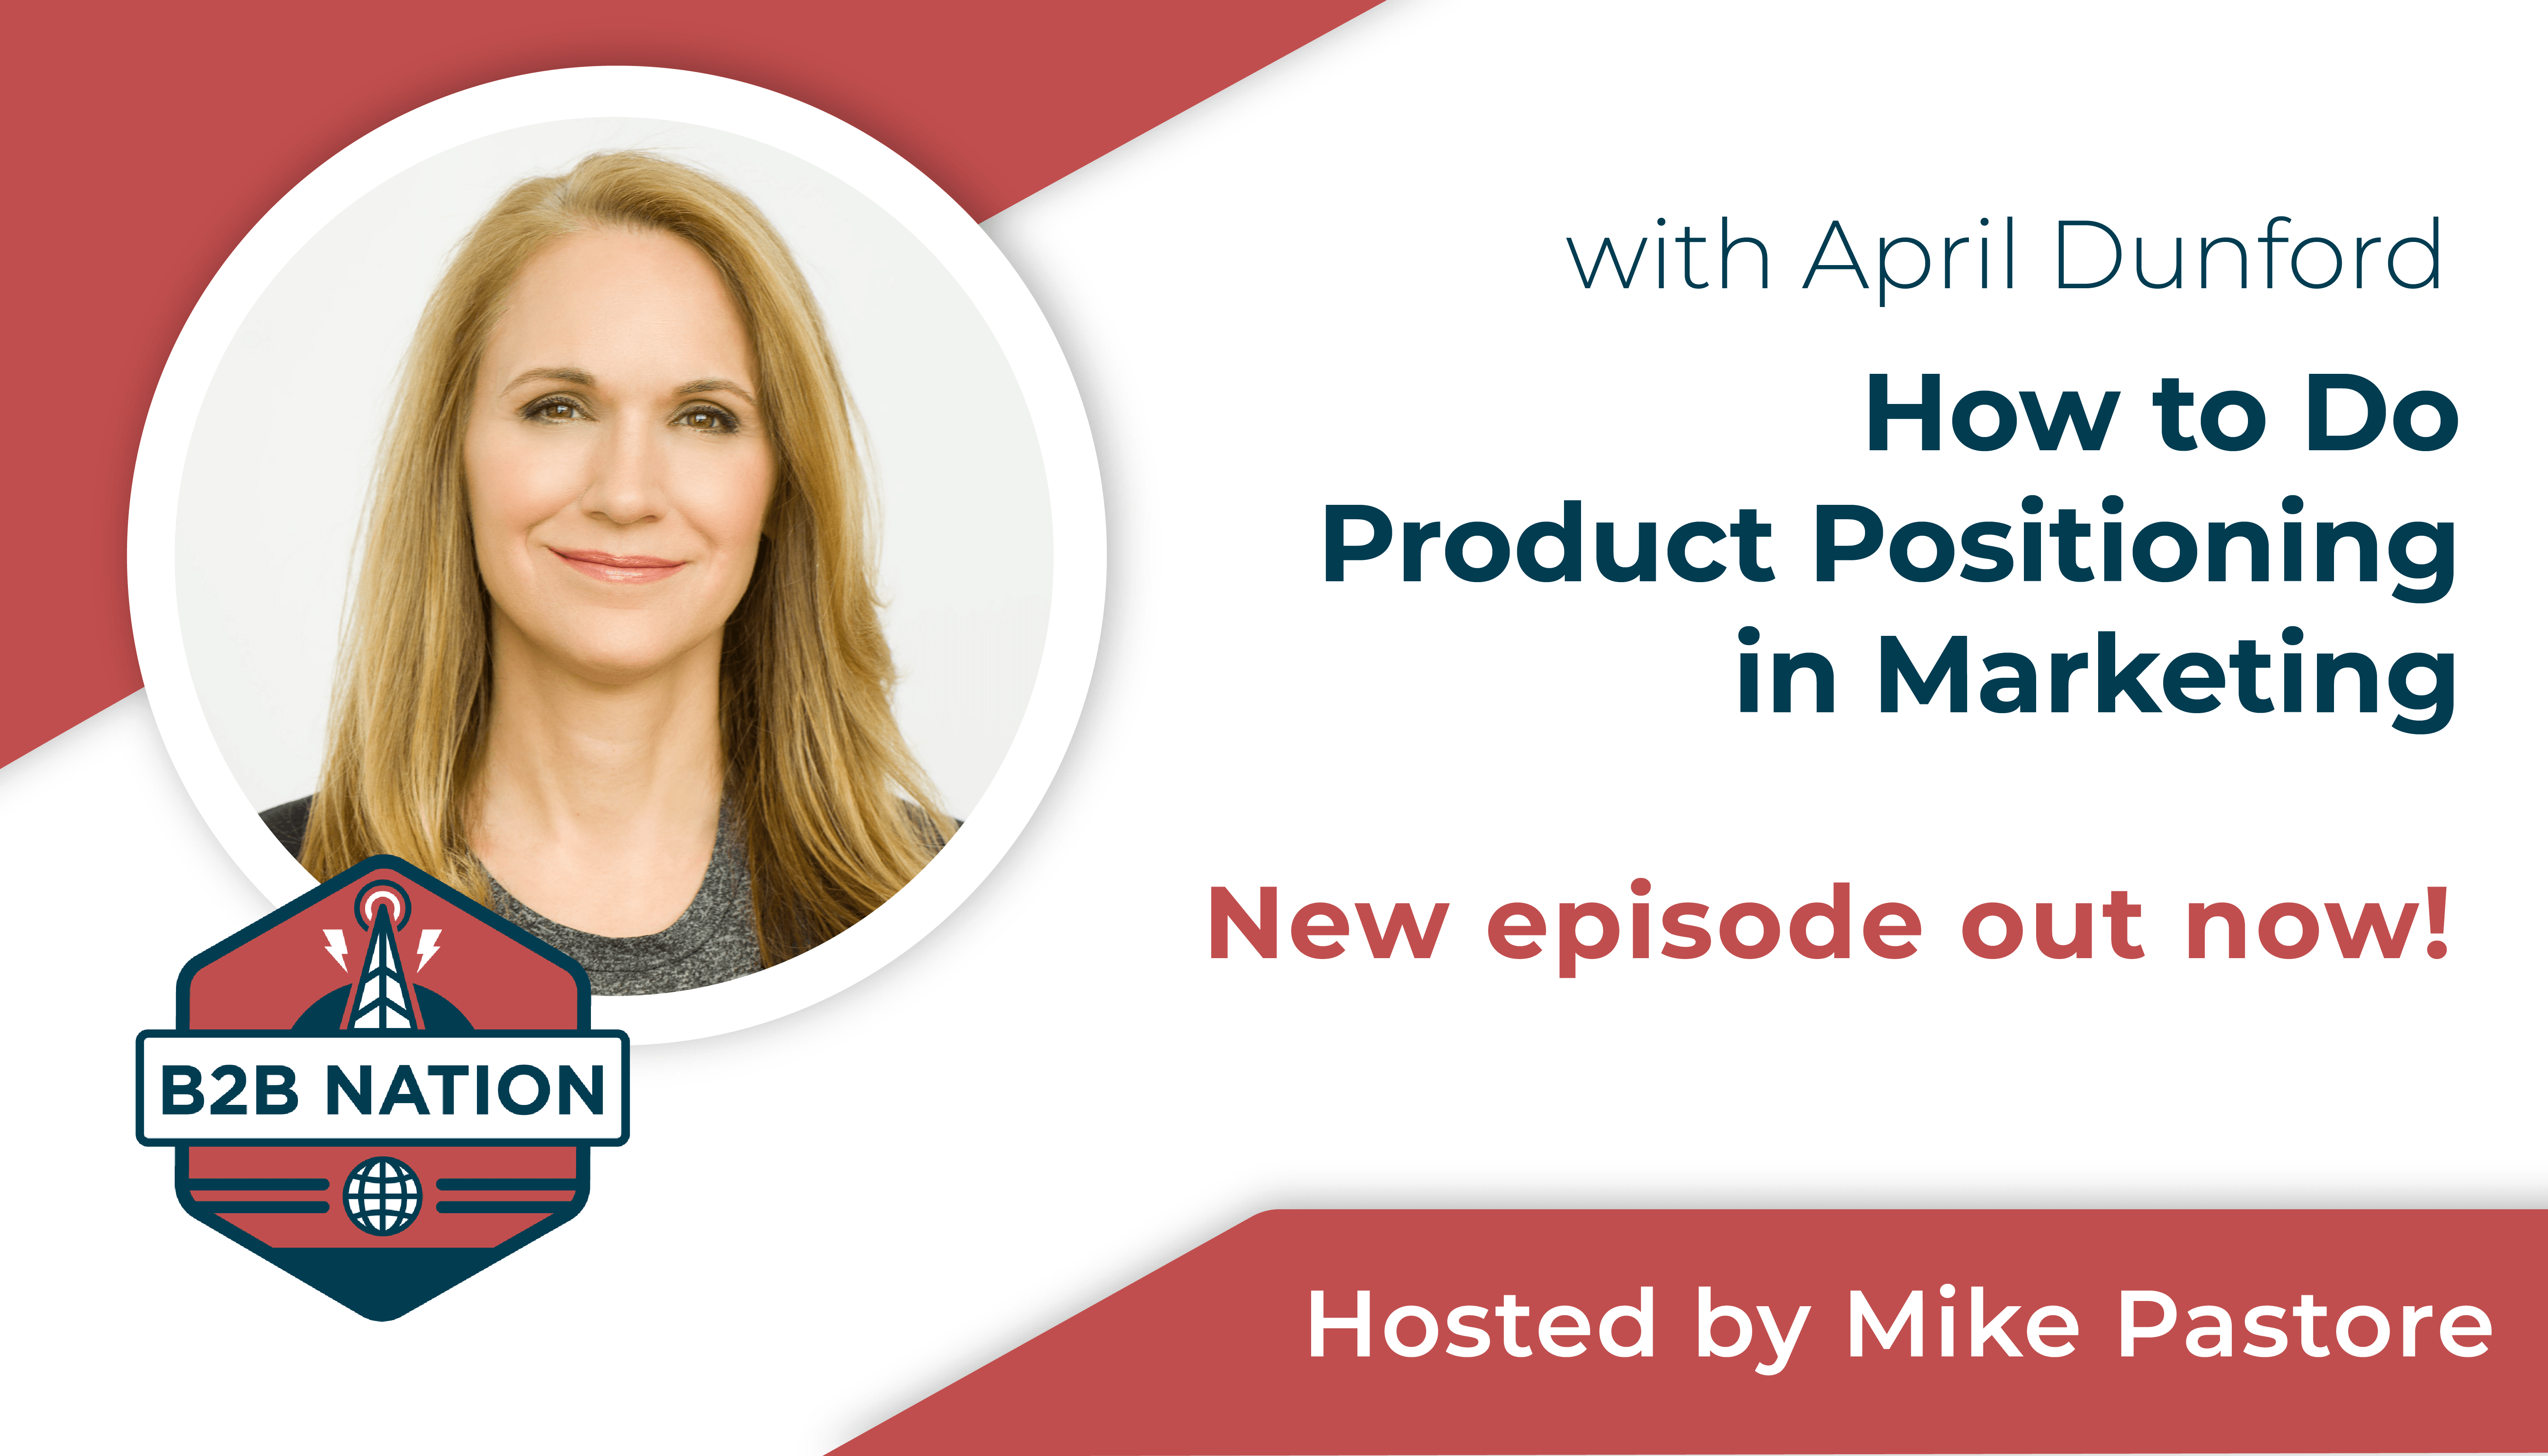 How to do product positioning, starring April Dunford.